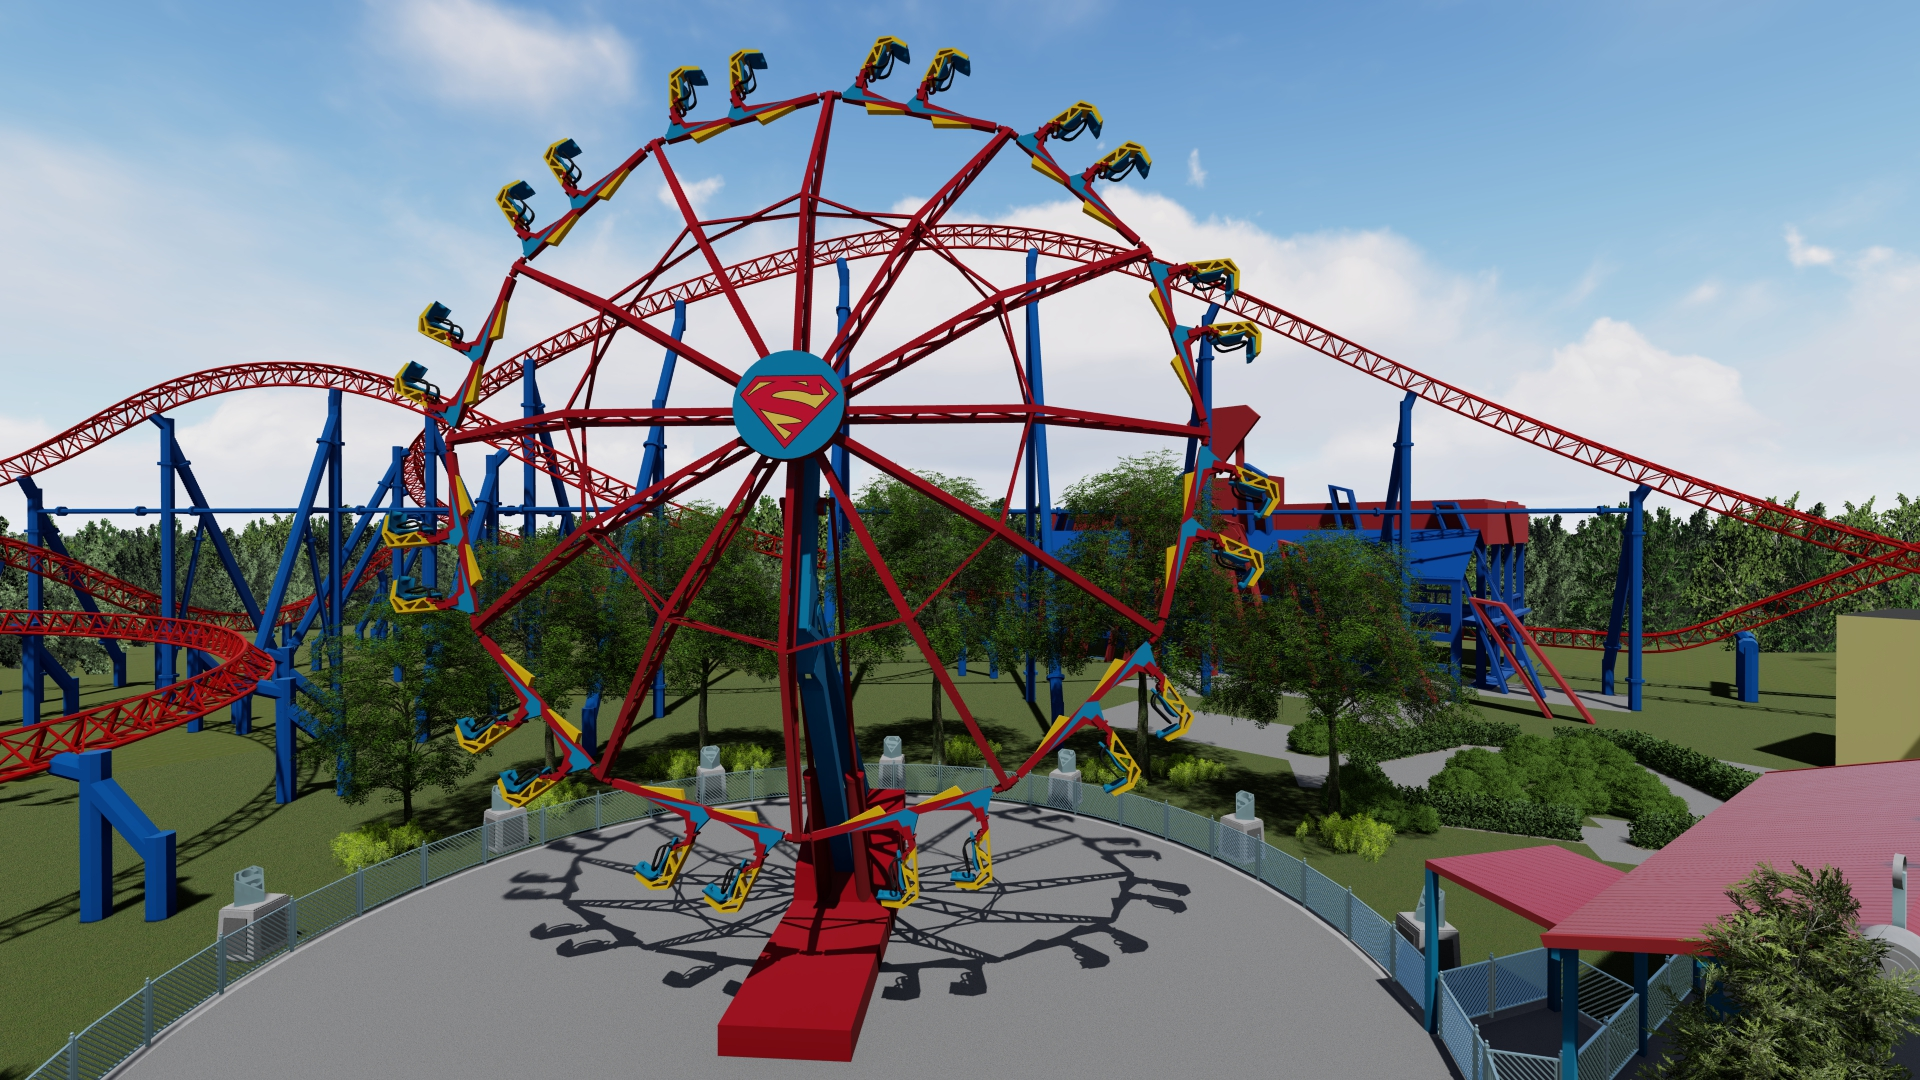 Supergirl: Sky Flyer New for 2020 at Six Flags New England